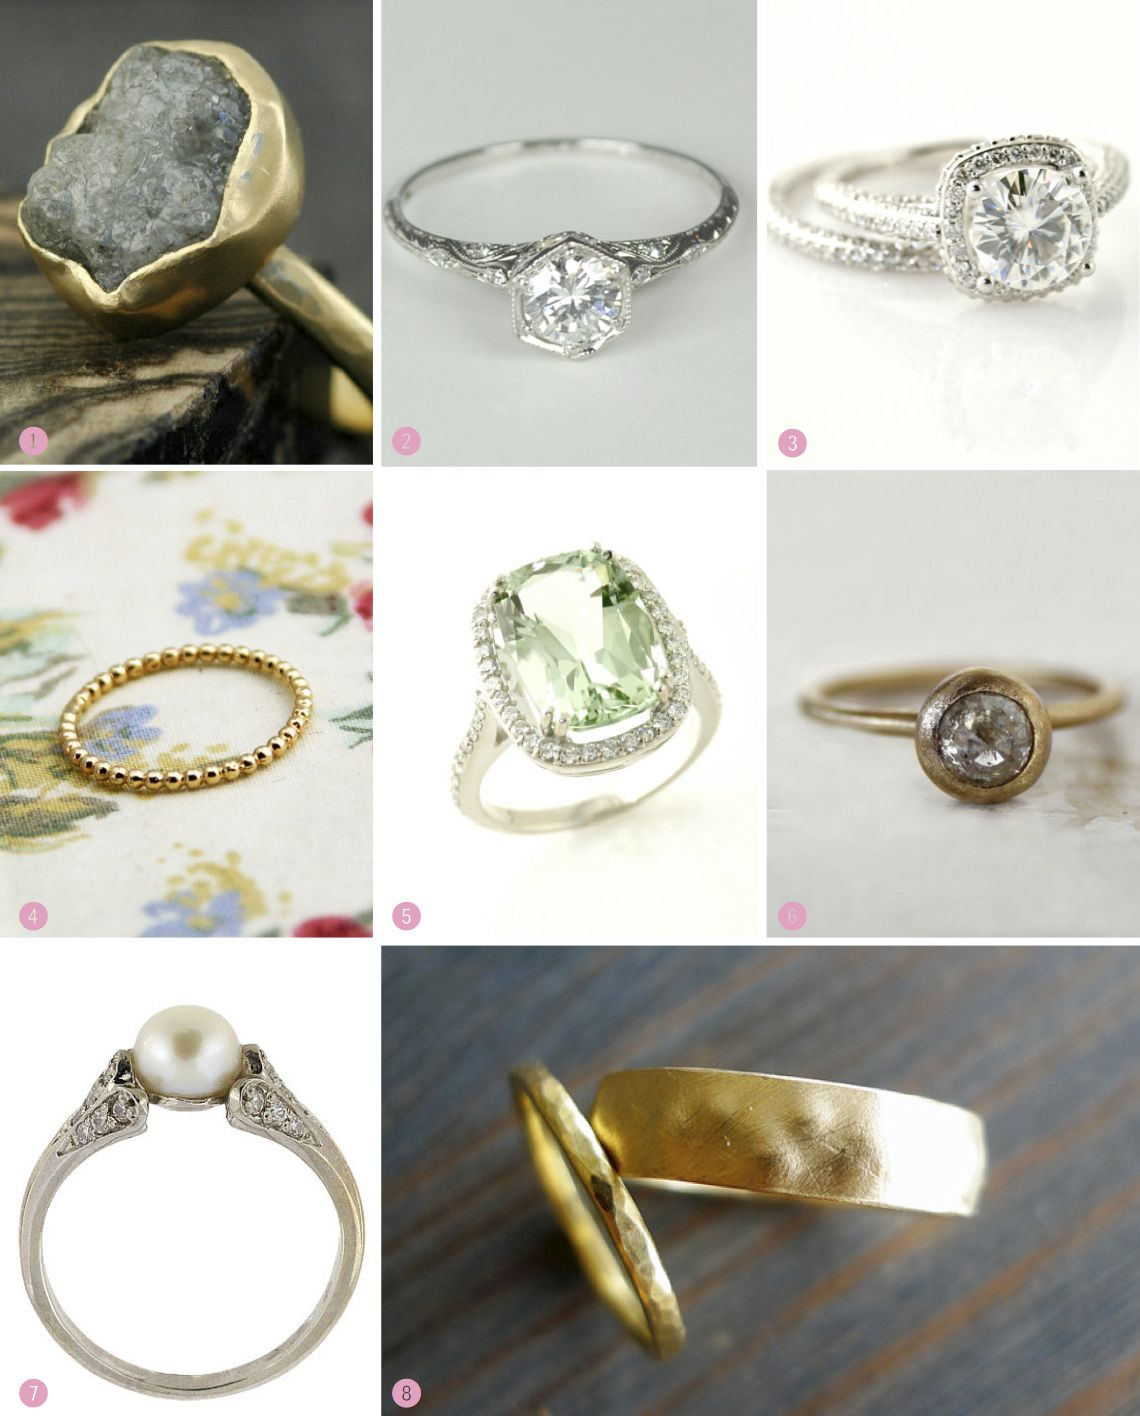 etsy engagement and wedding ring inspiration httpsupr - Etsy Wedding Rings